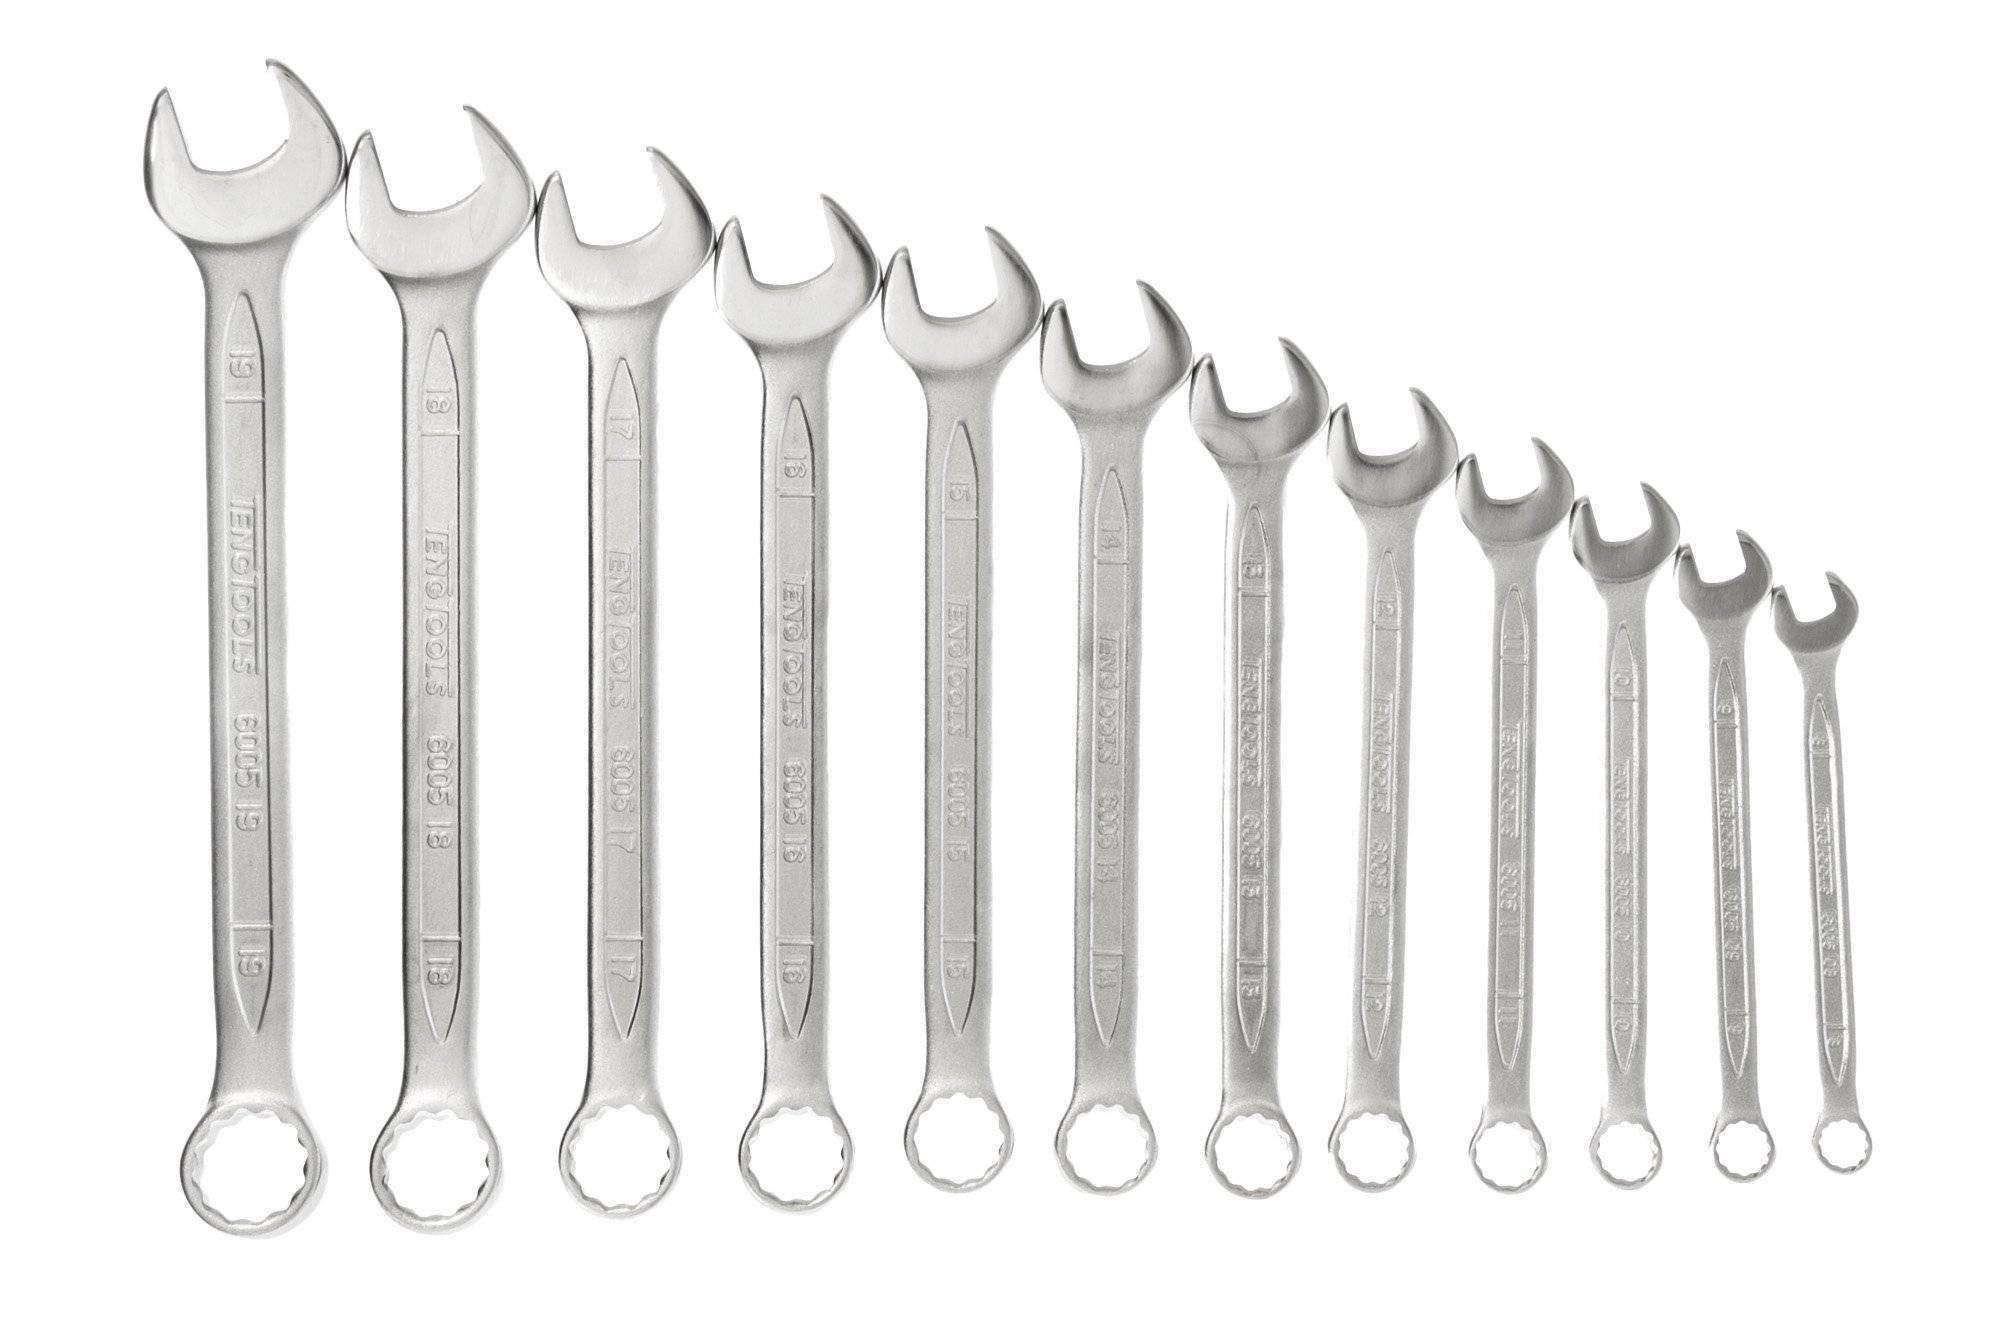 Teng Tools - 12 Piece Metric Combination Spanner Set 8-19mm - TEN-O-6512N - Teng Tools USA